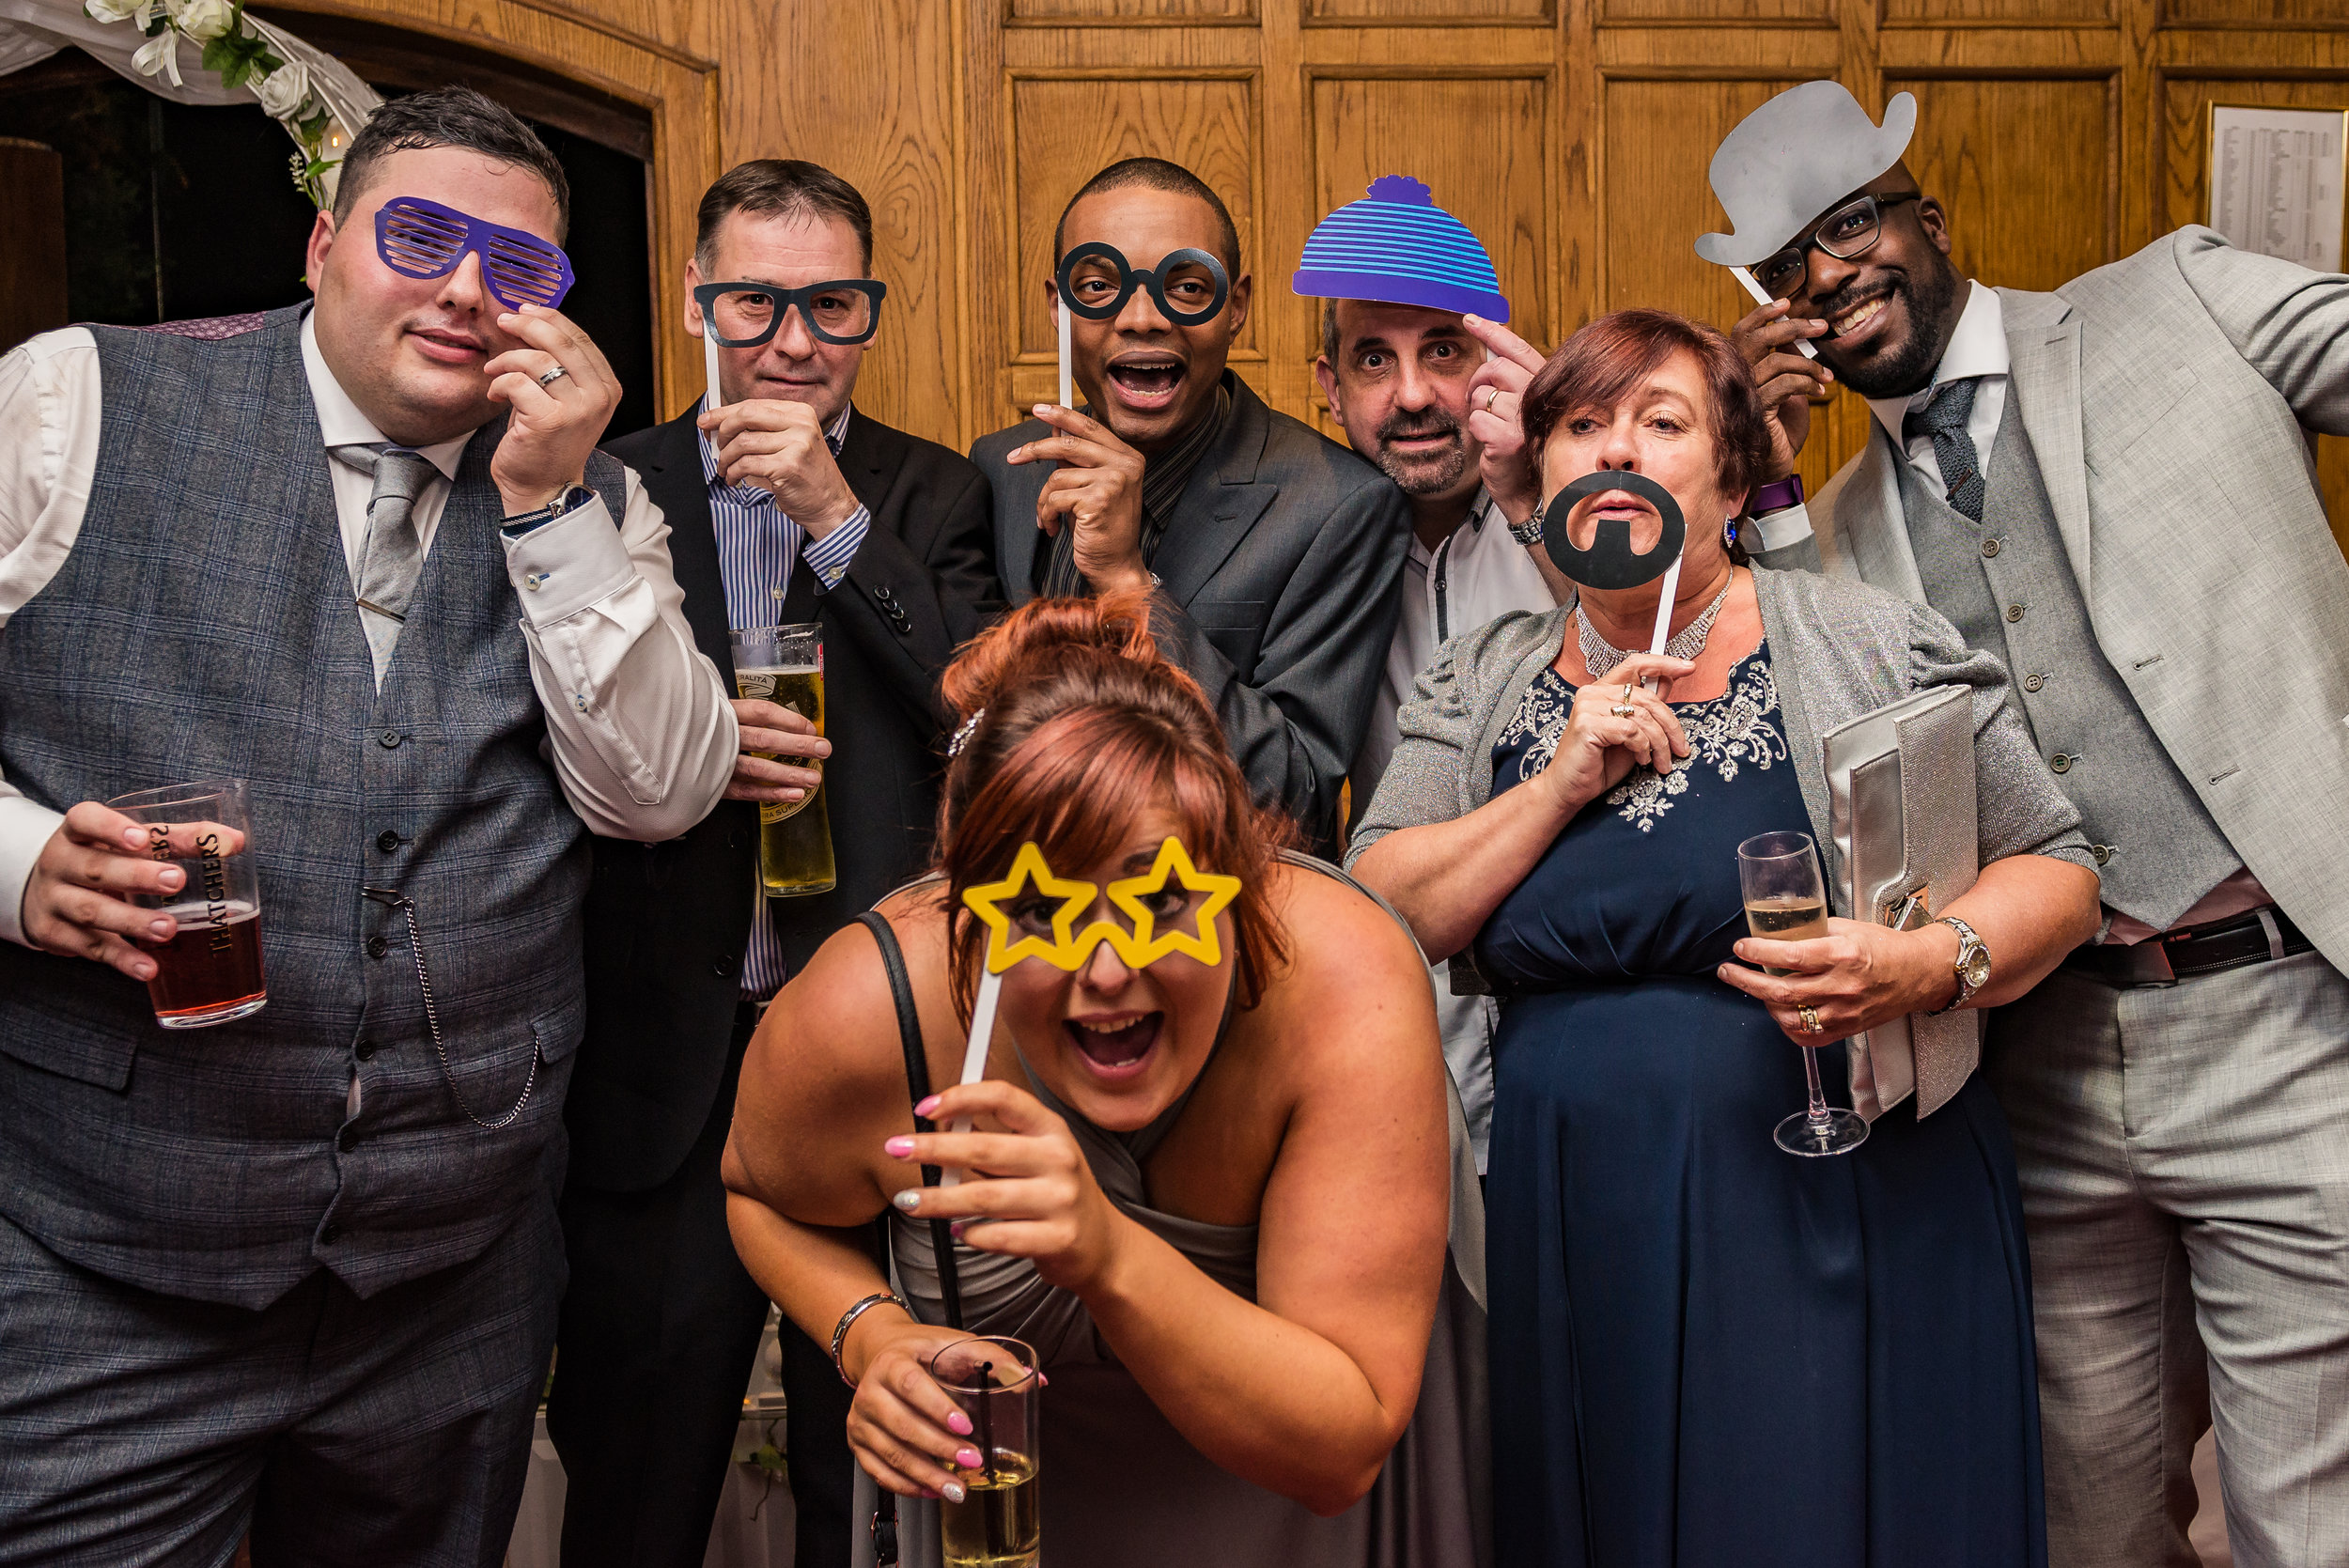 castle Bromwich hall hotel wedding photography fun party photographs with wedding guests